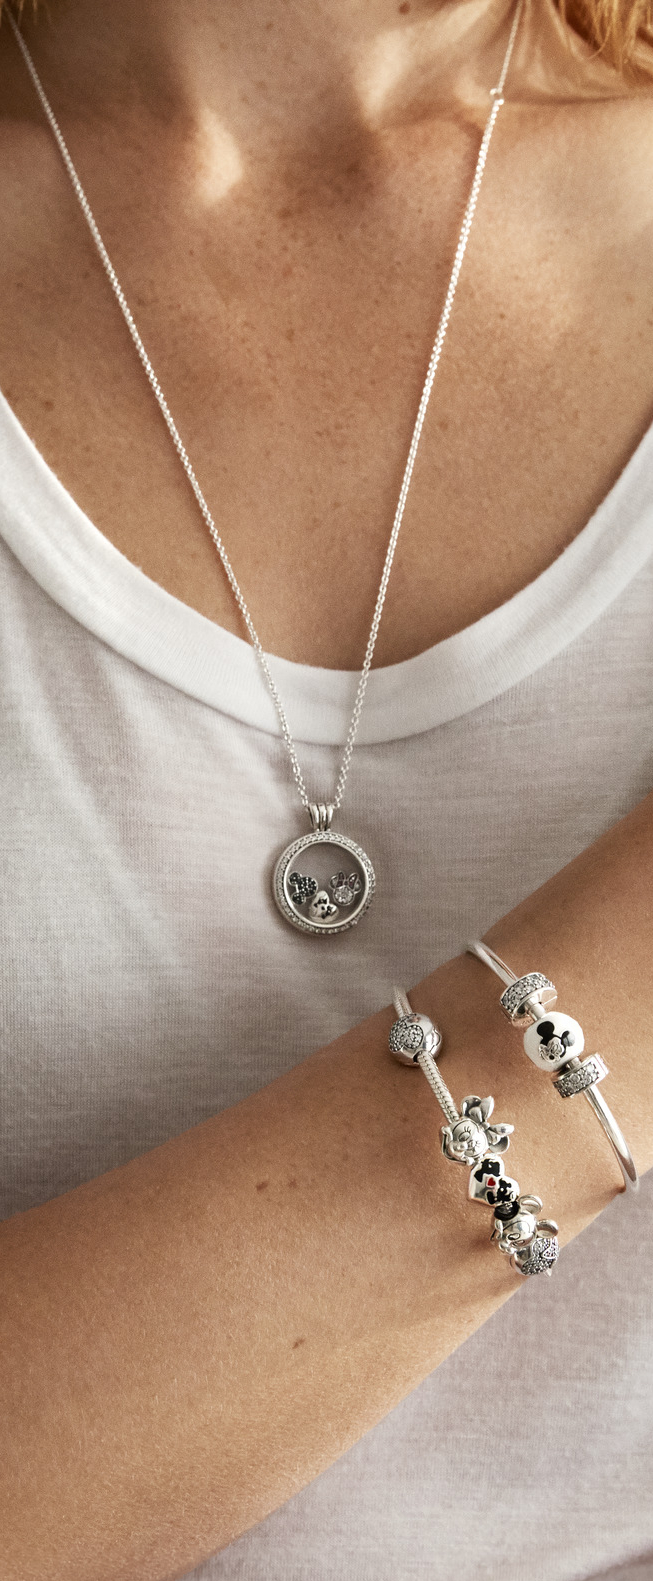 2018 Silver & Gold Jewelry Collection | Disney In 2019 | Pandora Within Most Current Pandora Moments Medium O Pendant Necklaces (View 3 of 25)